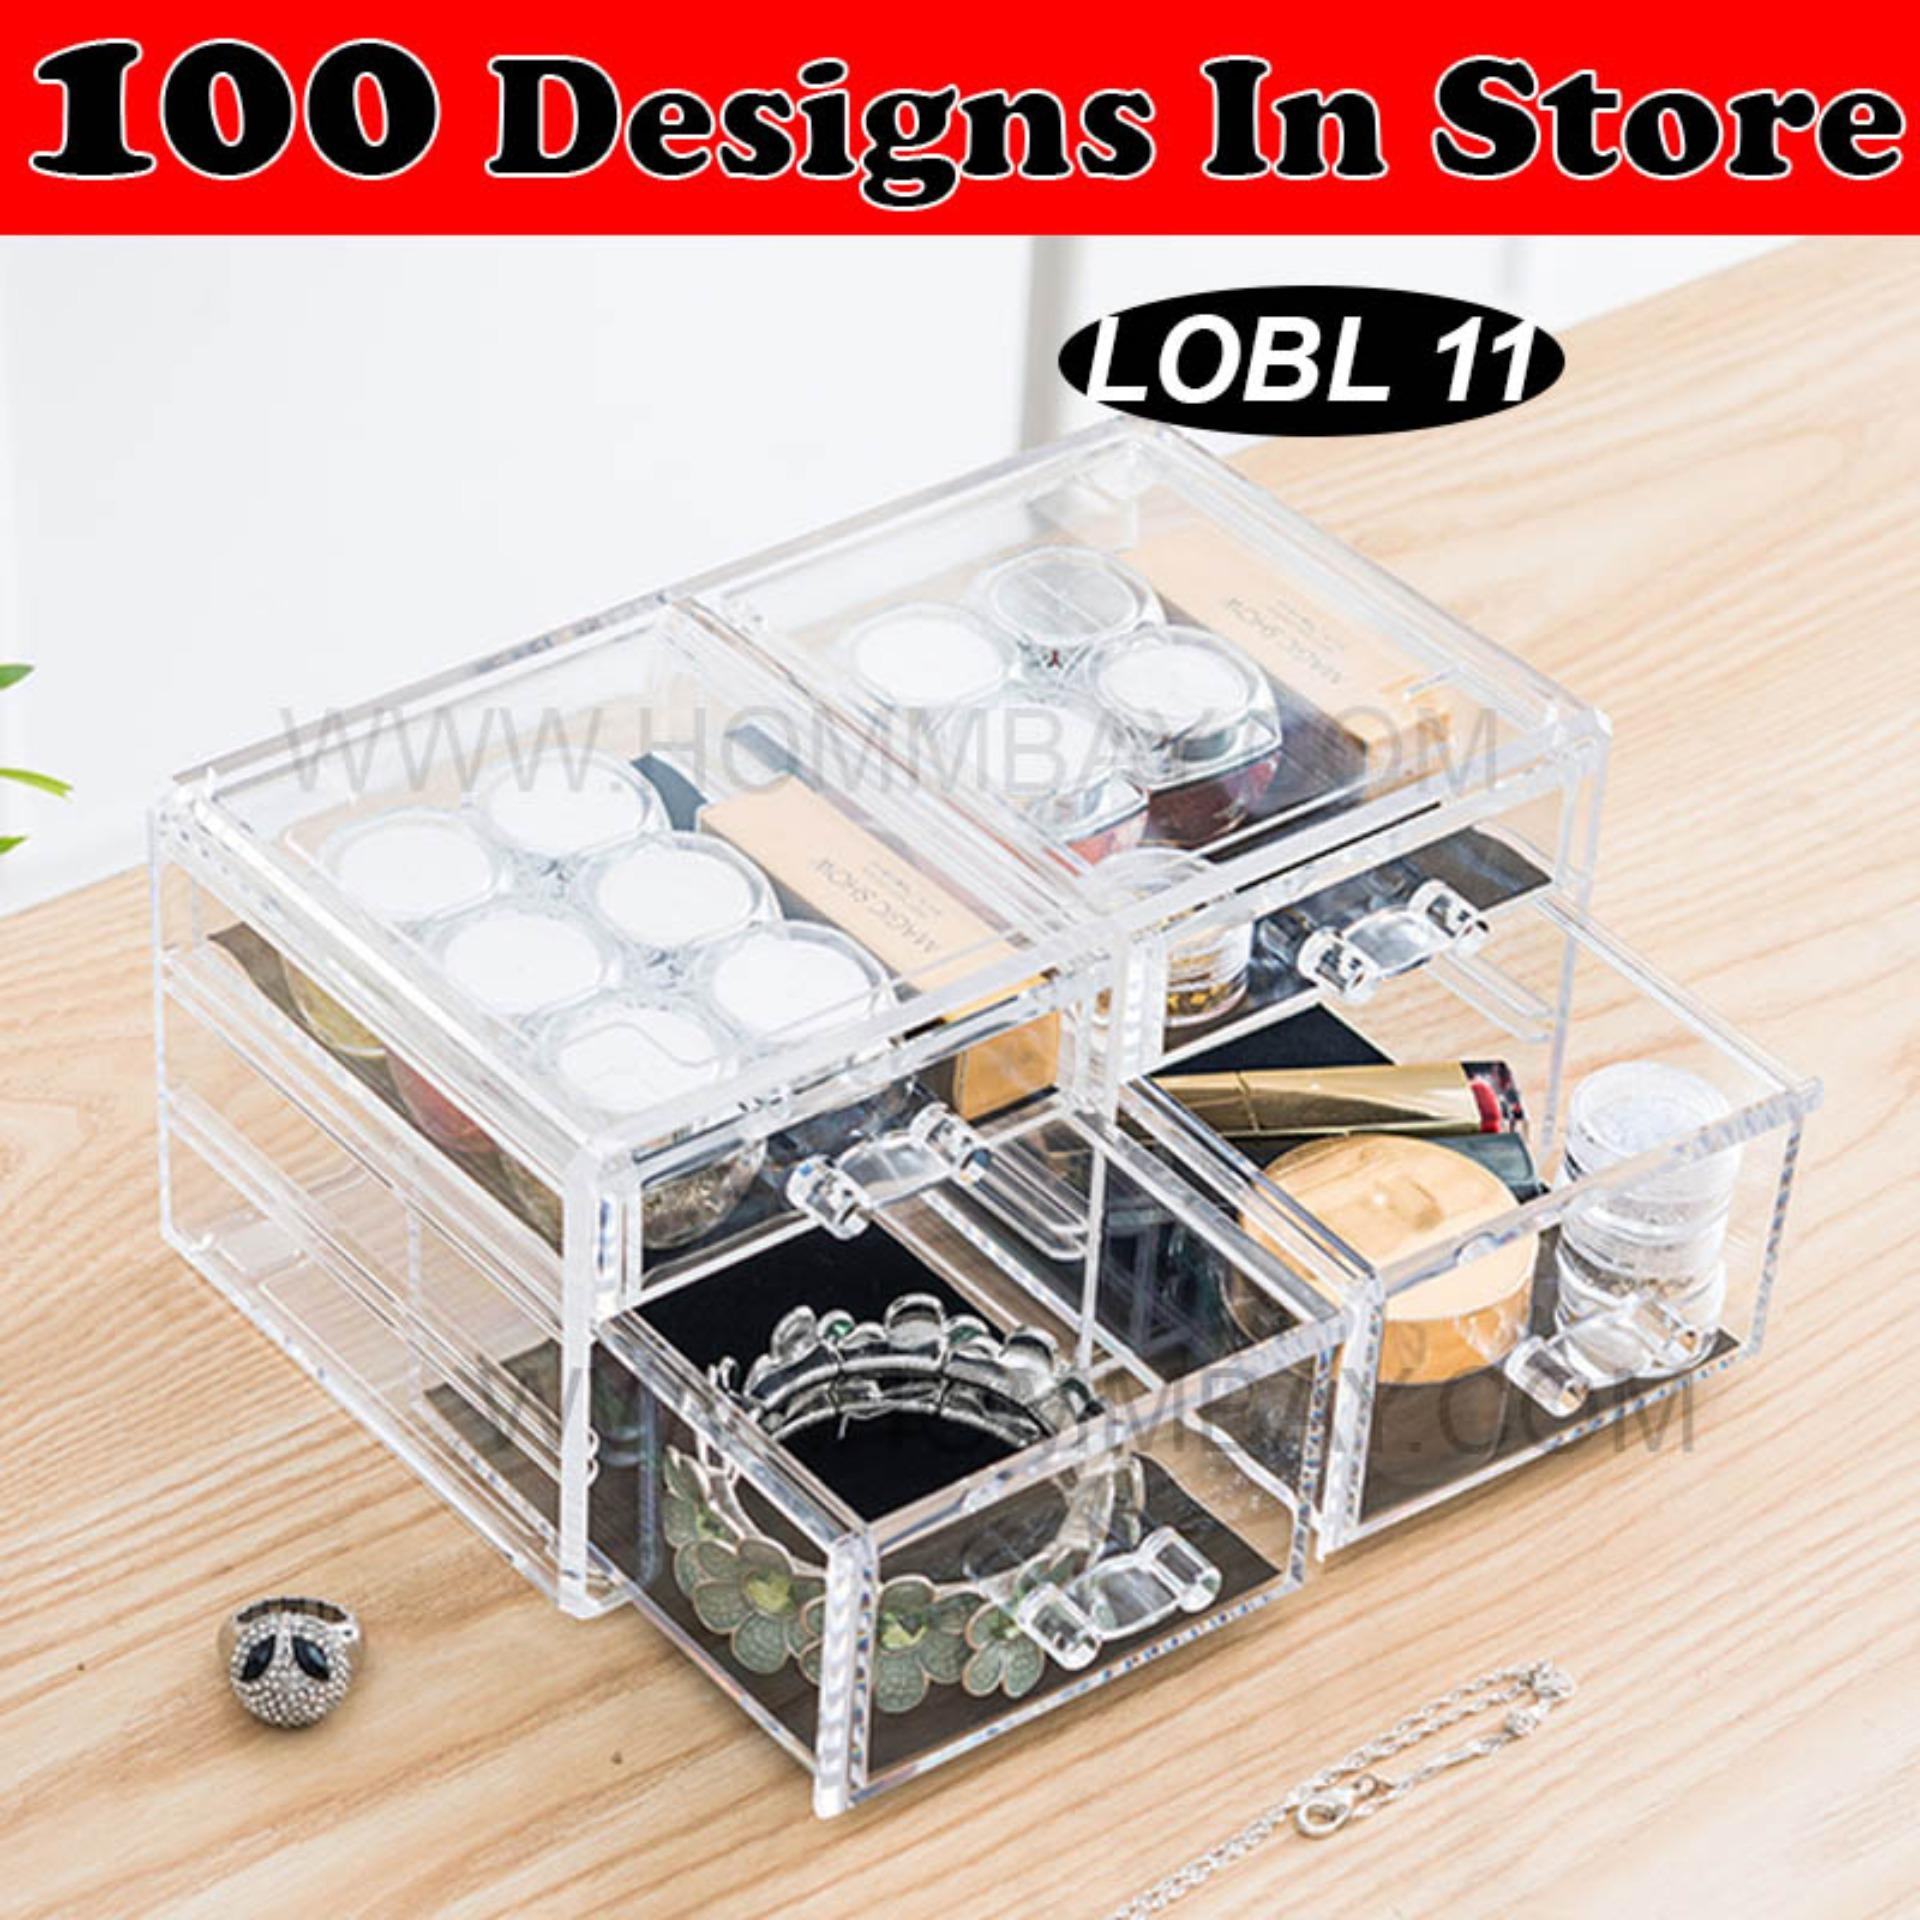 Who Sells Clear Acrylic Transparent Make Up Makeup Lipstick Brush Brushes Cosmetic Jewellery Jewelry Organiser Organizer Drawer Storage Box Holder I Large I Stackable I Lobl 11 The Cheapest